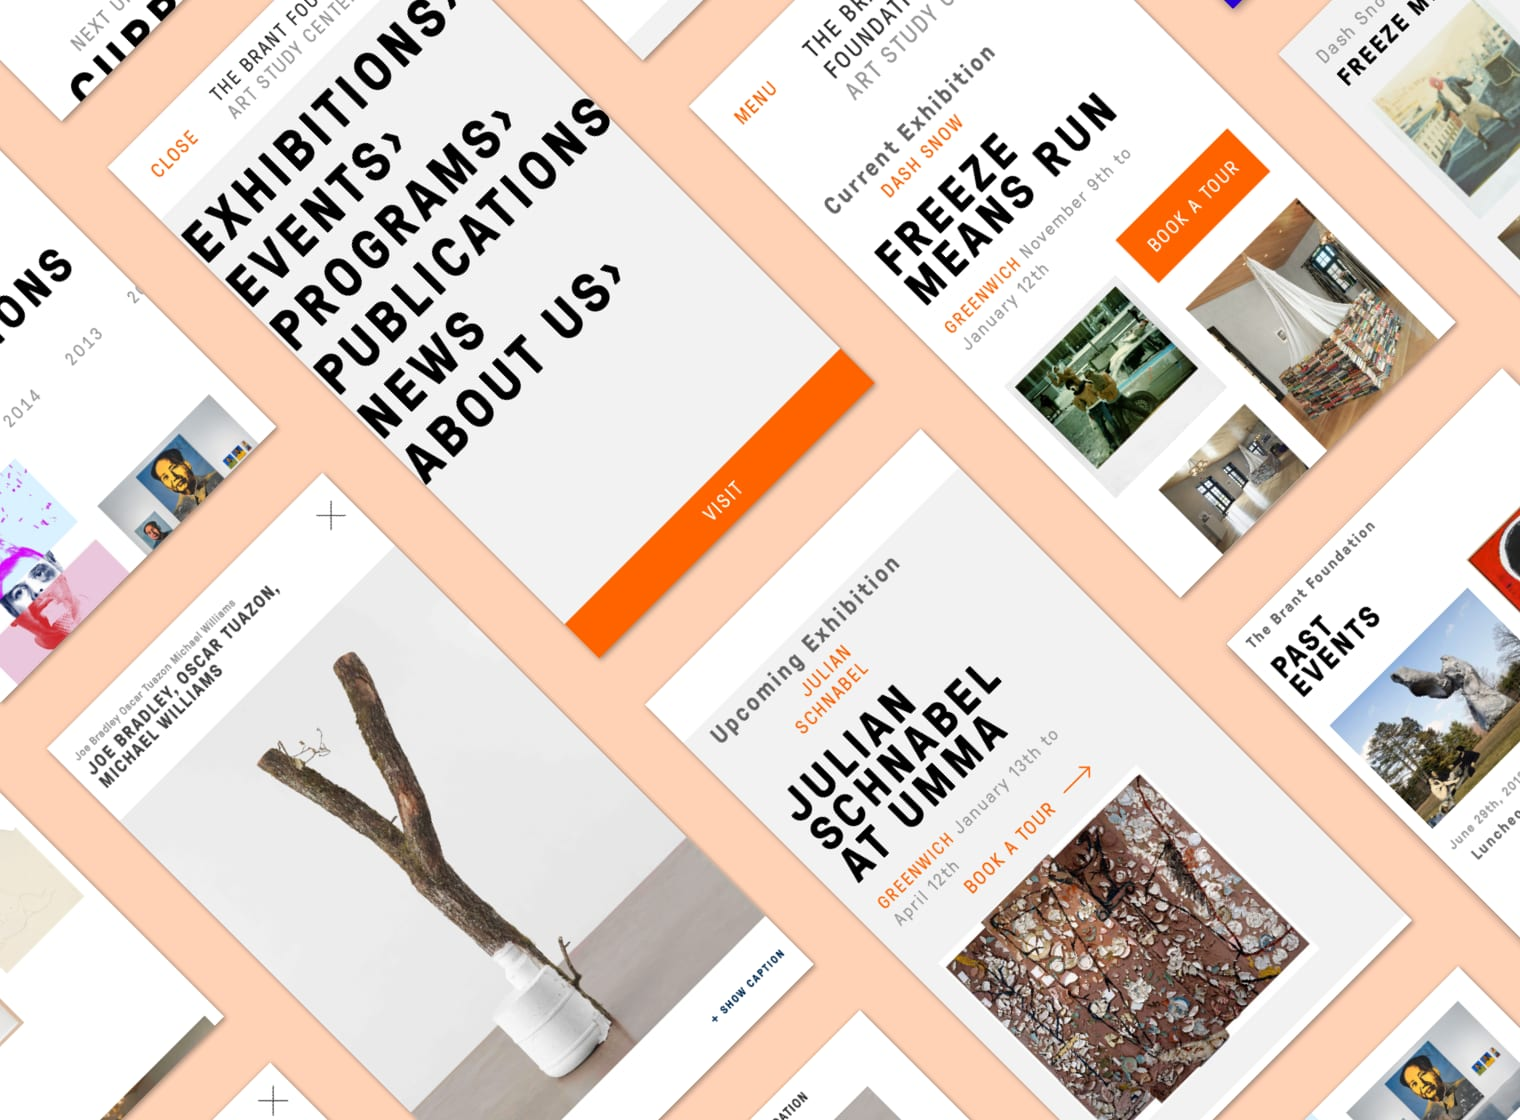 The Brant Foundation Responsive Redesign